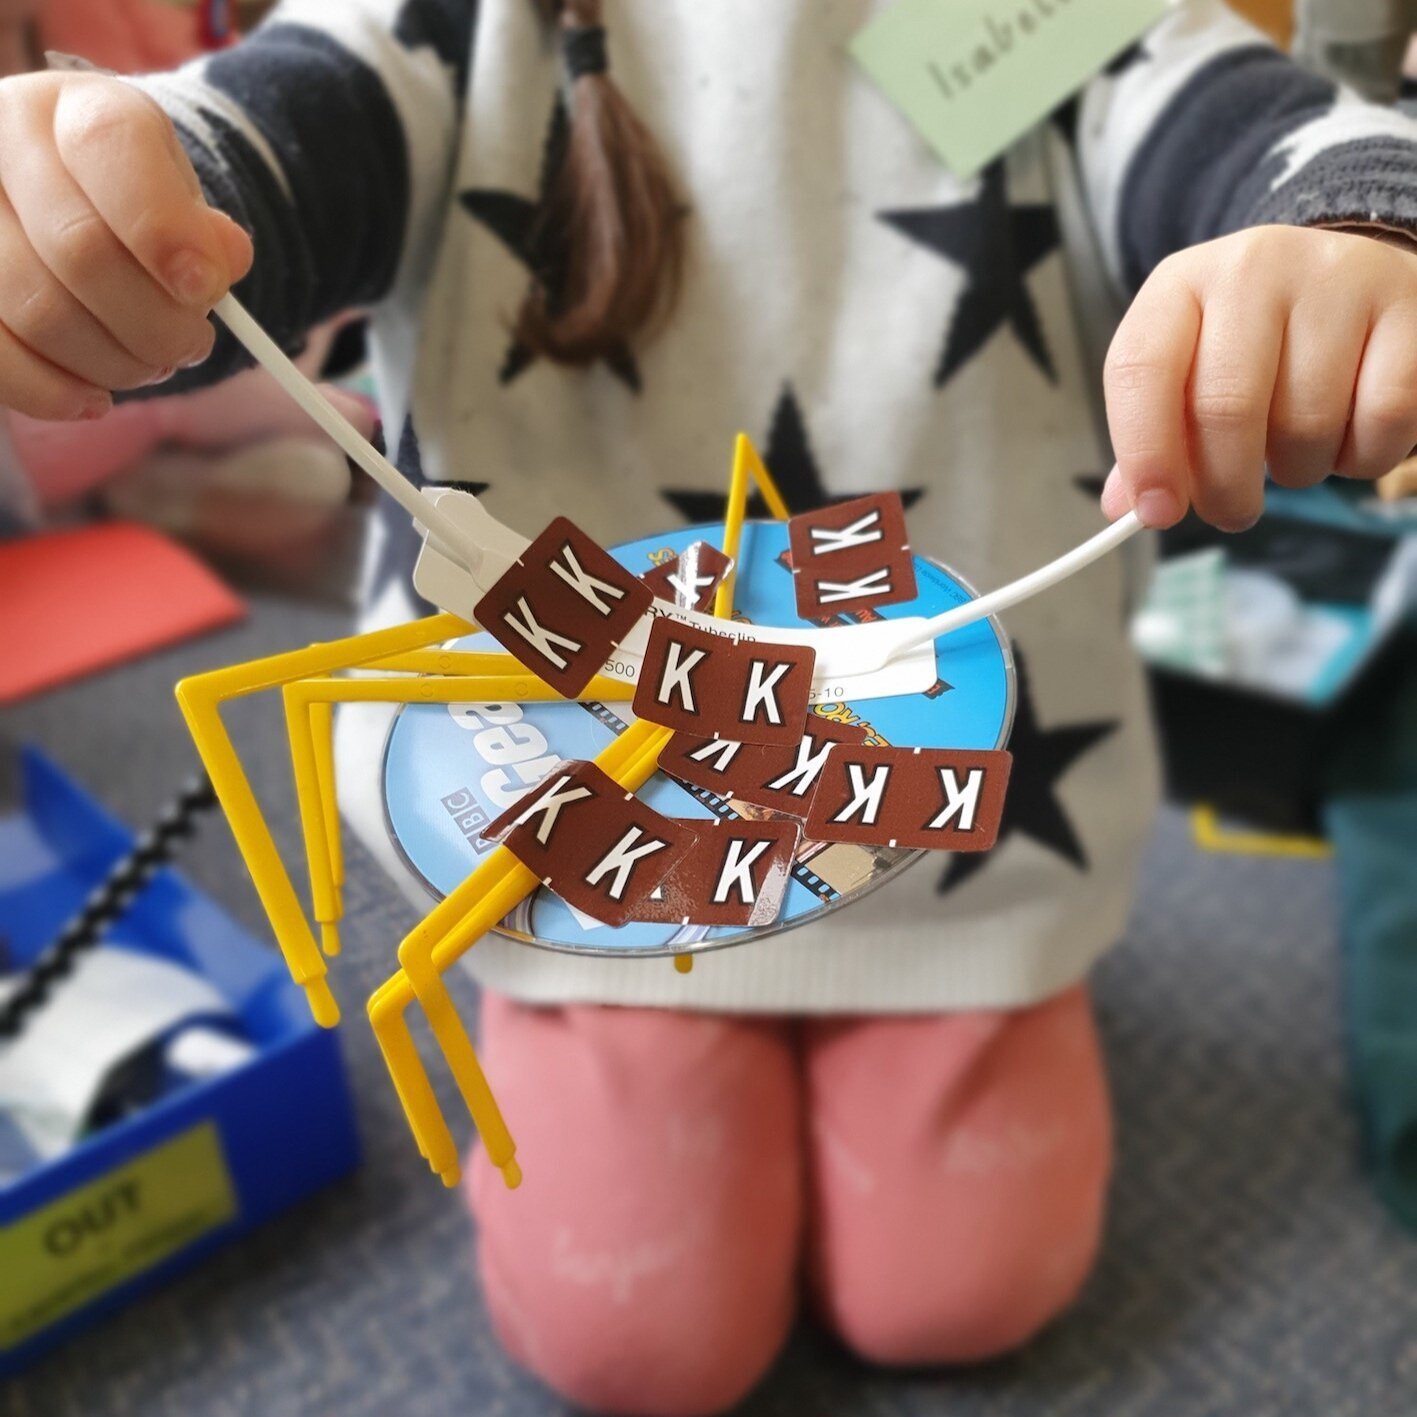 Kindergarten incursions include an 'upcycling' challenge for children to creatively explore ways to make new items from old.